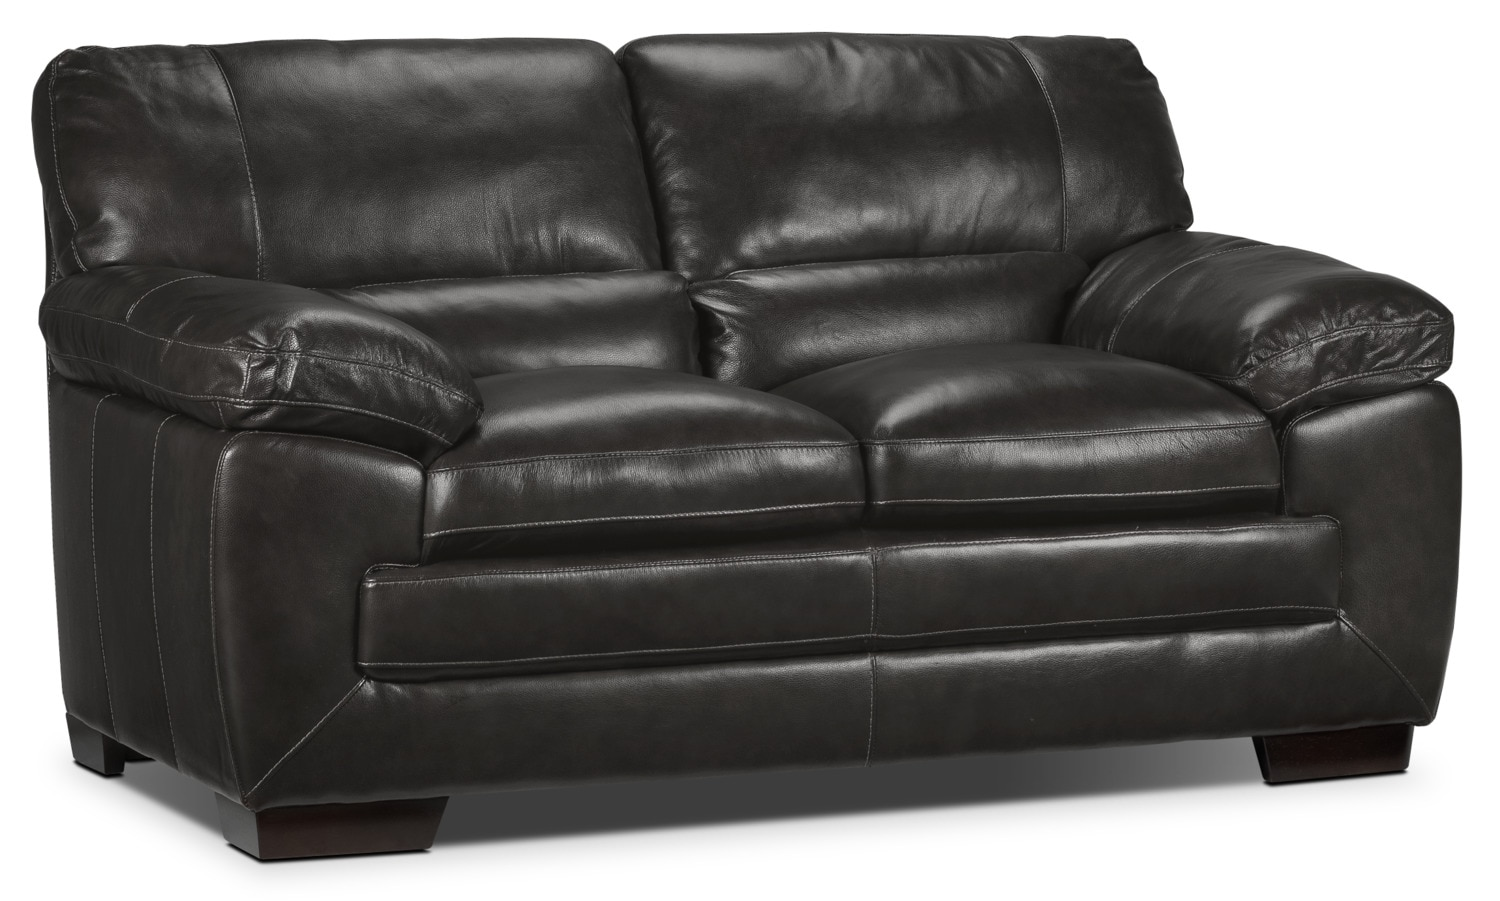 Amarillo Loveseat - Charcoal